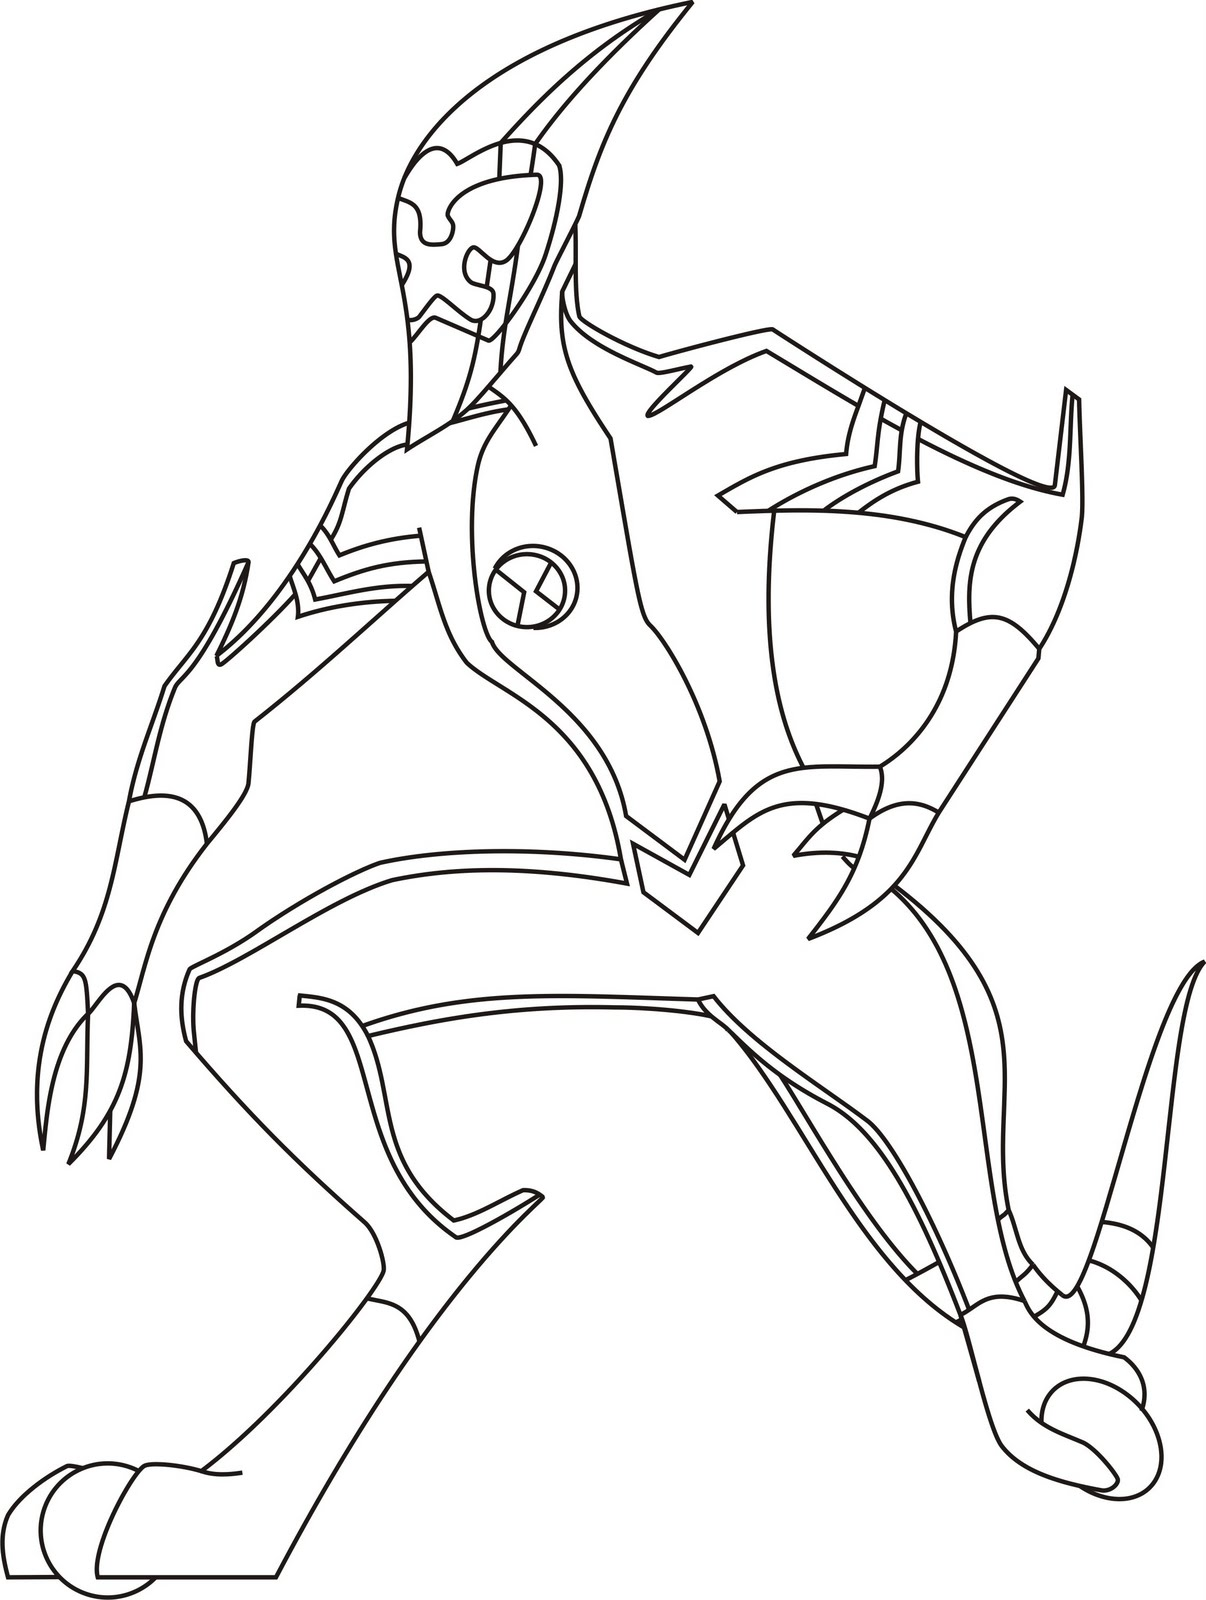 Ben 10 Coloring Pages Gorgeous Ben 10 Coloring Pages  Coloring Kids